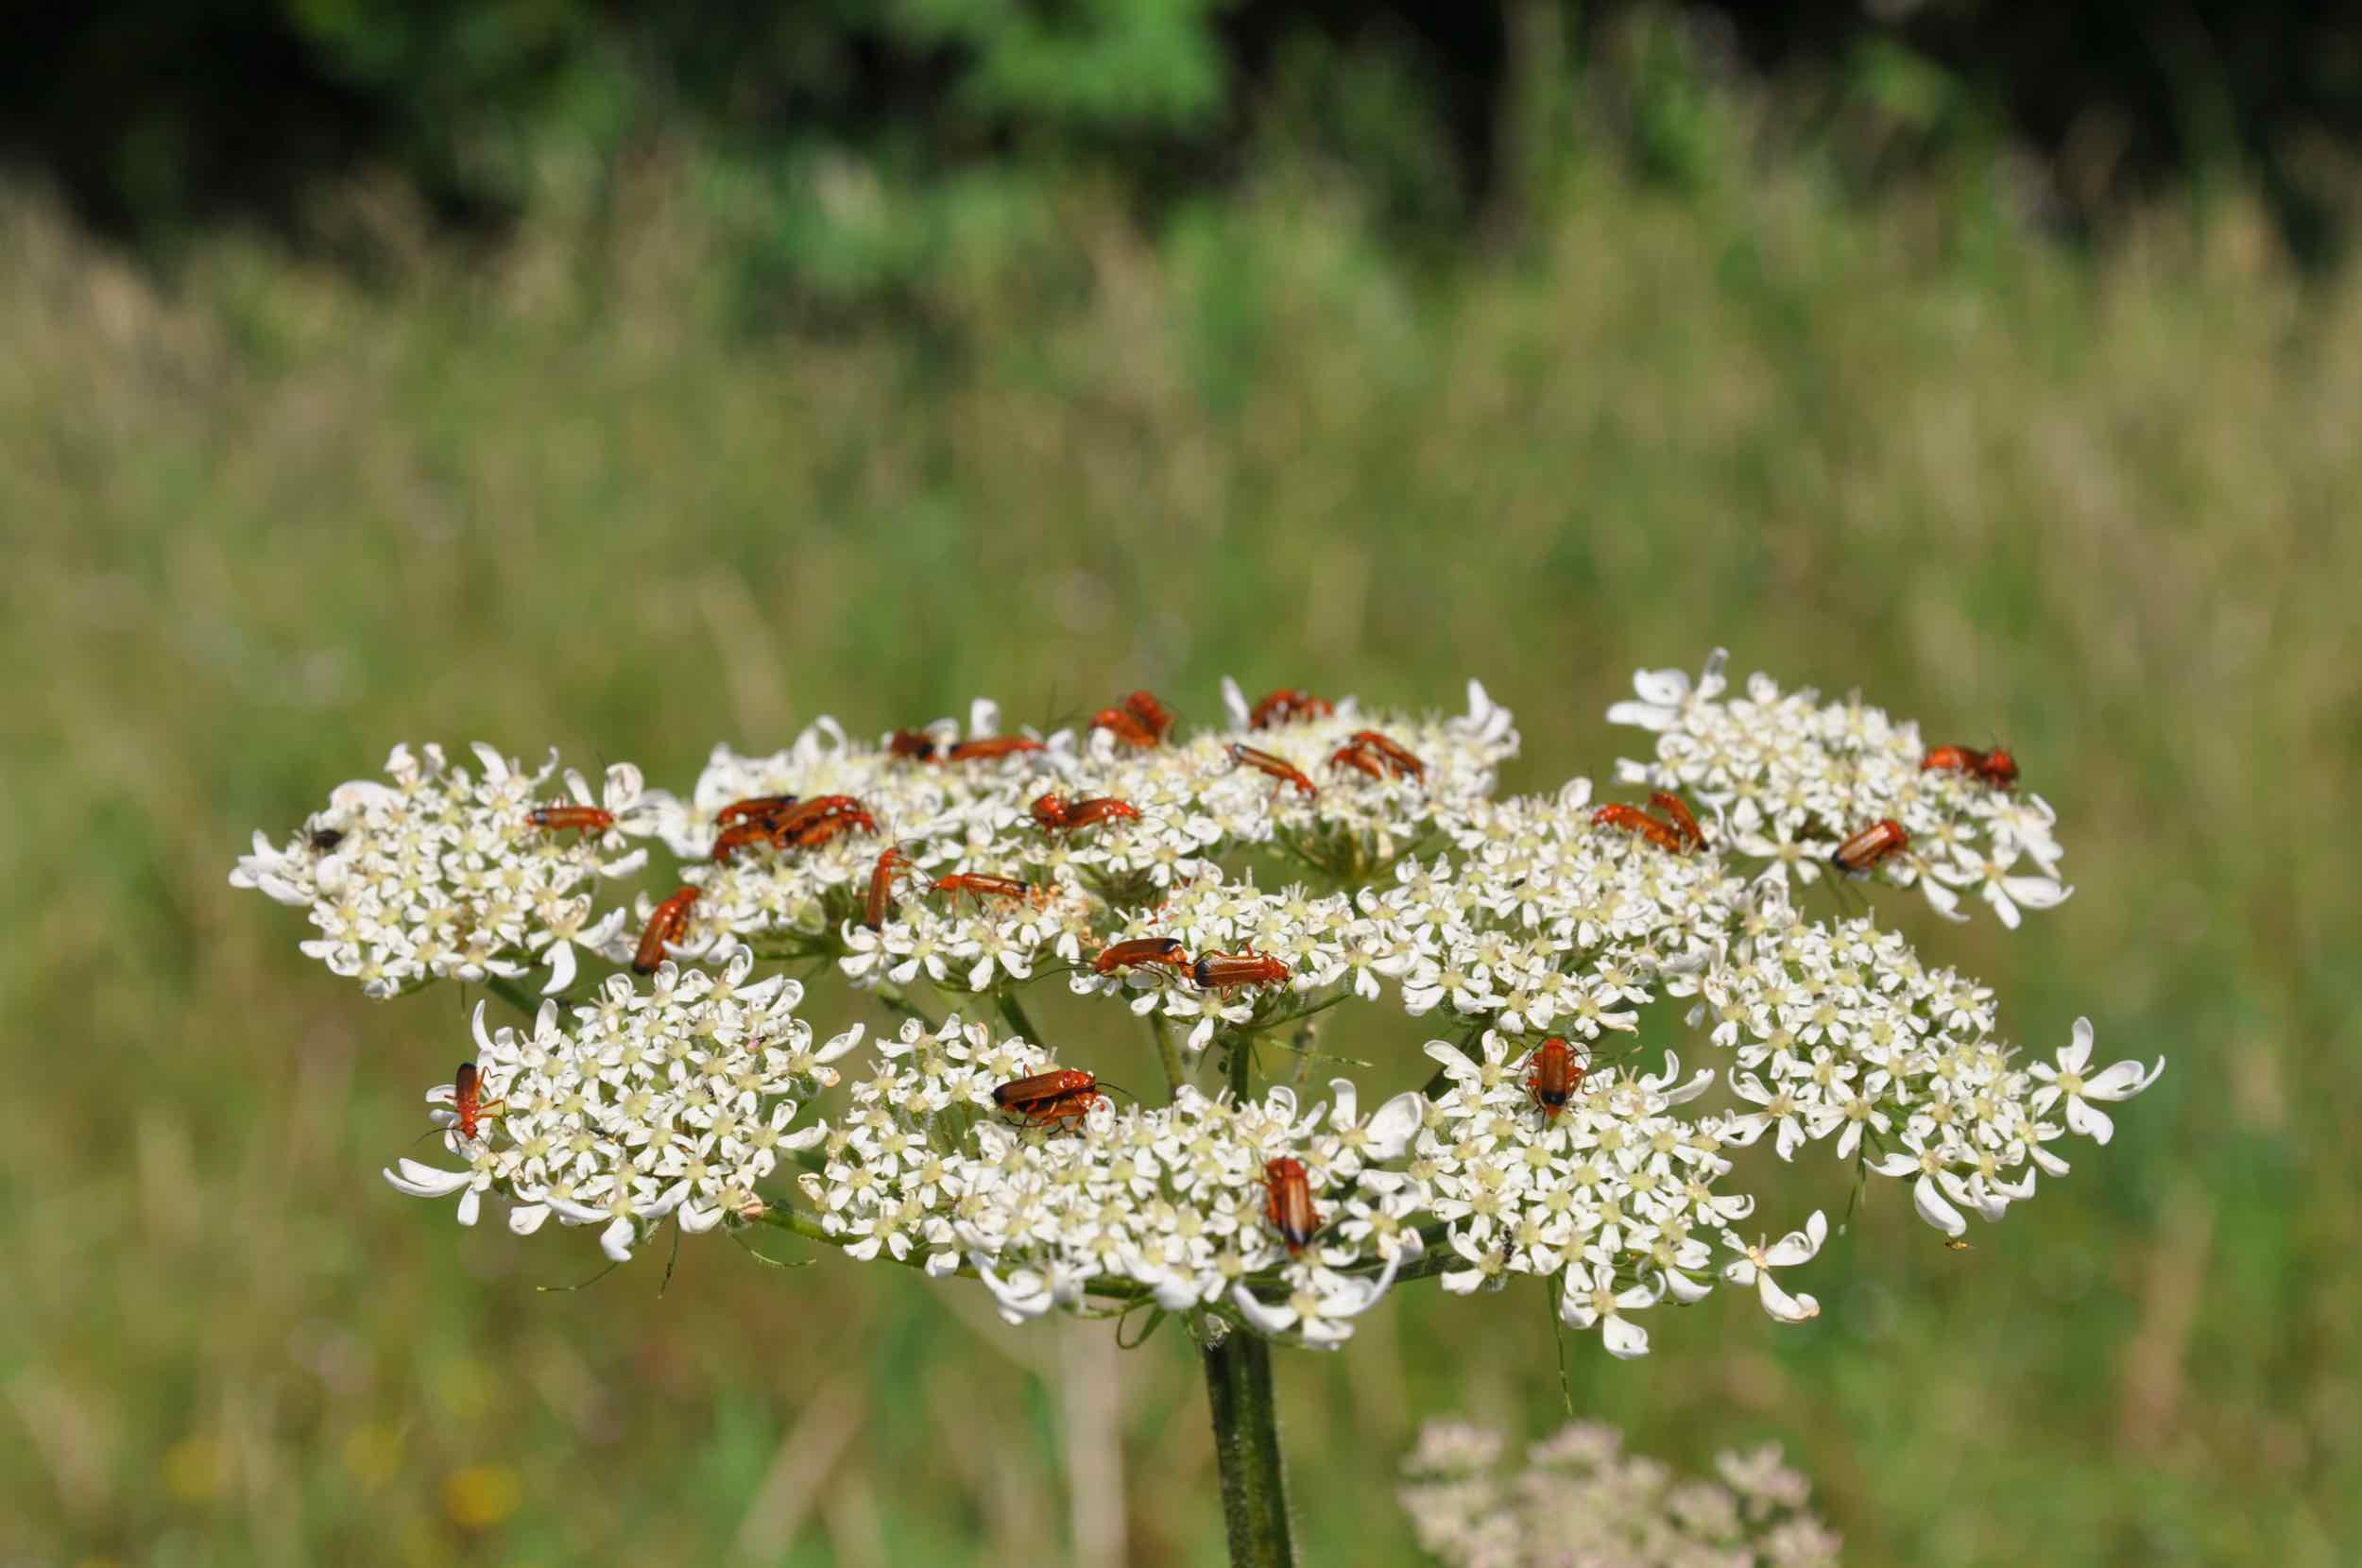 Soldier Beetles on Hogweed.jpg